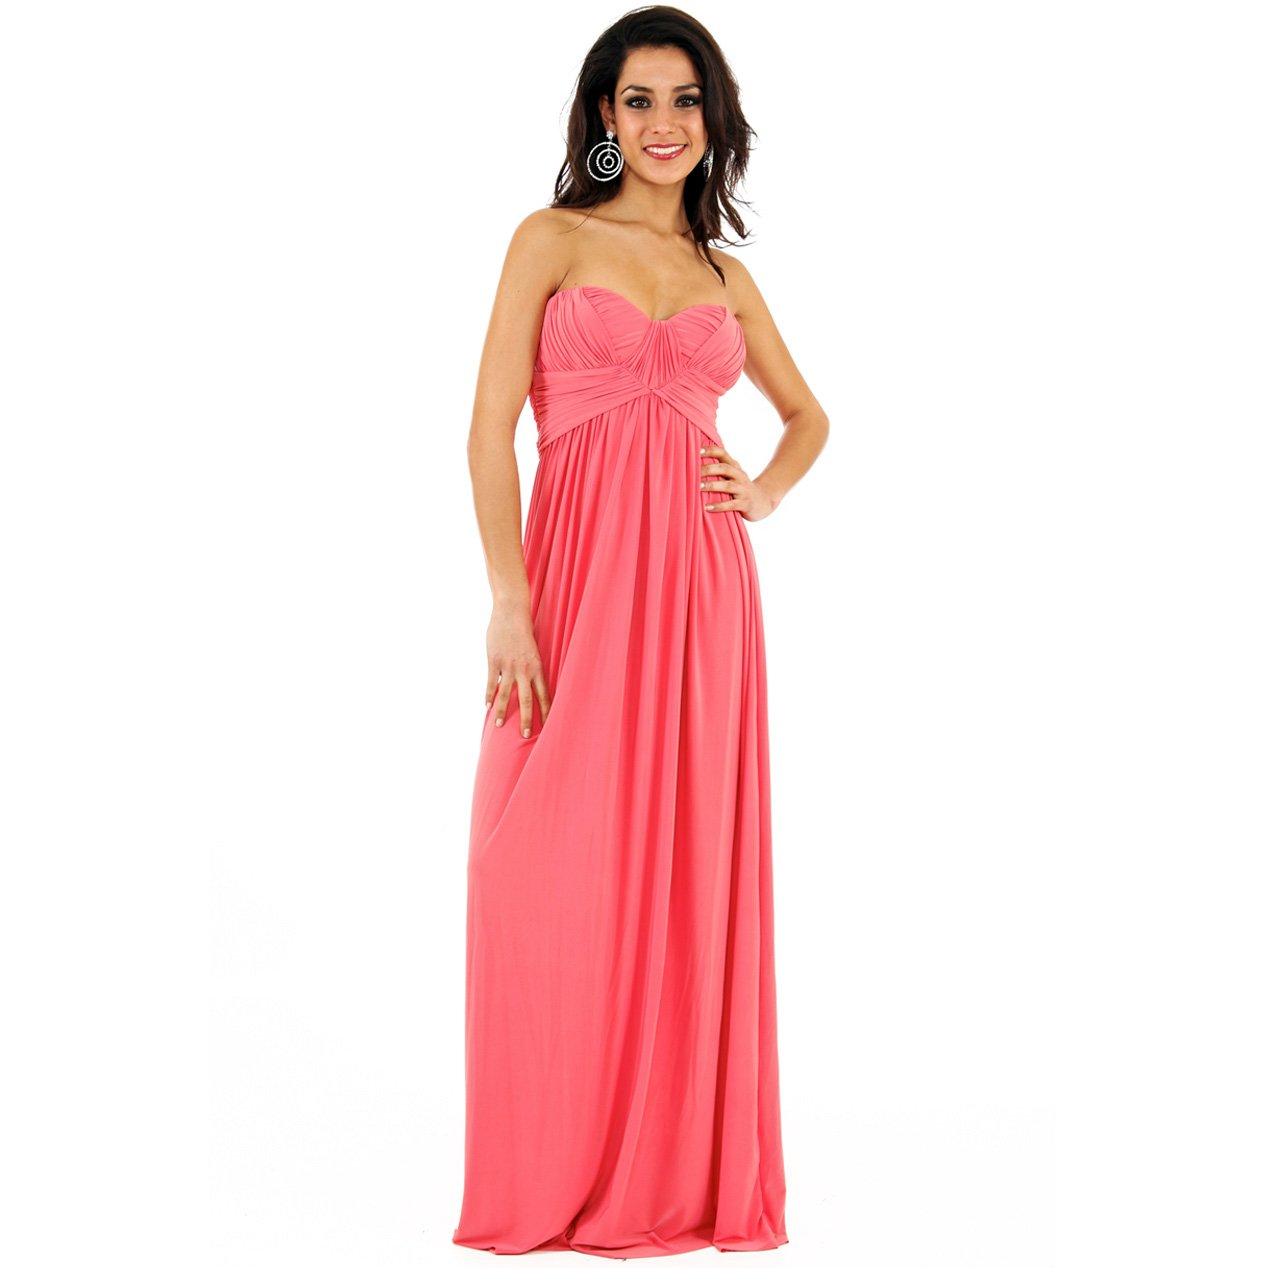 JESSICA ALBA CORAL LADIES STRAPLESS LONG SUMMER EVENING PARTY PROM GOWN MAXI DRESS UK 8-10, US 4-6